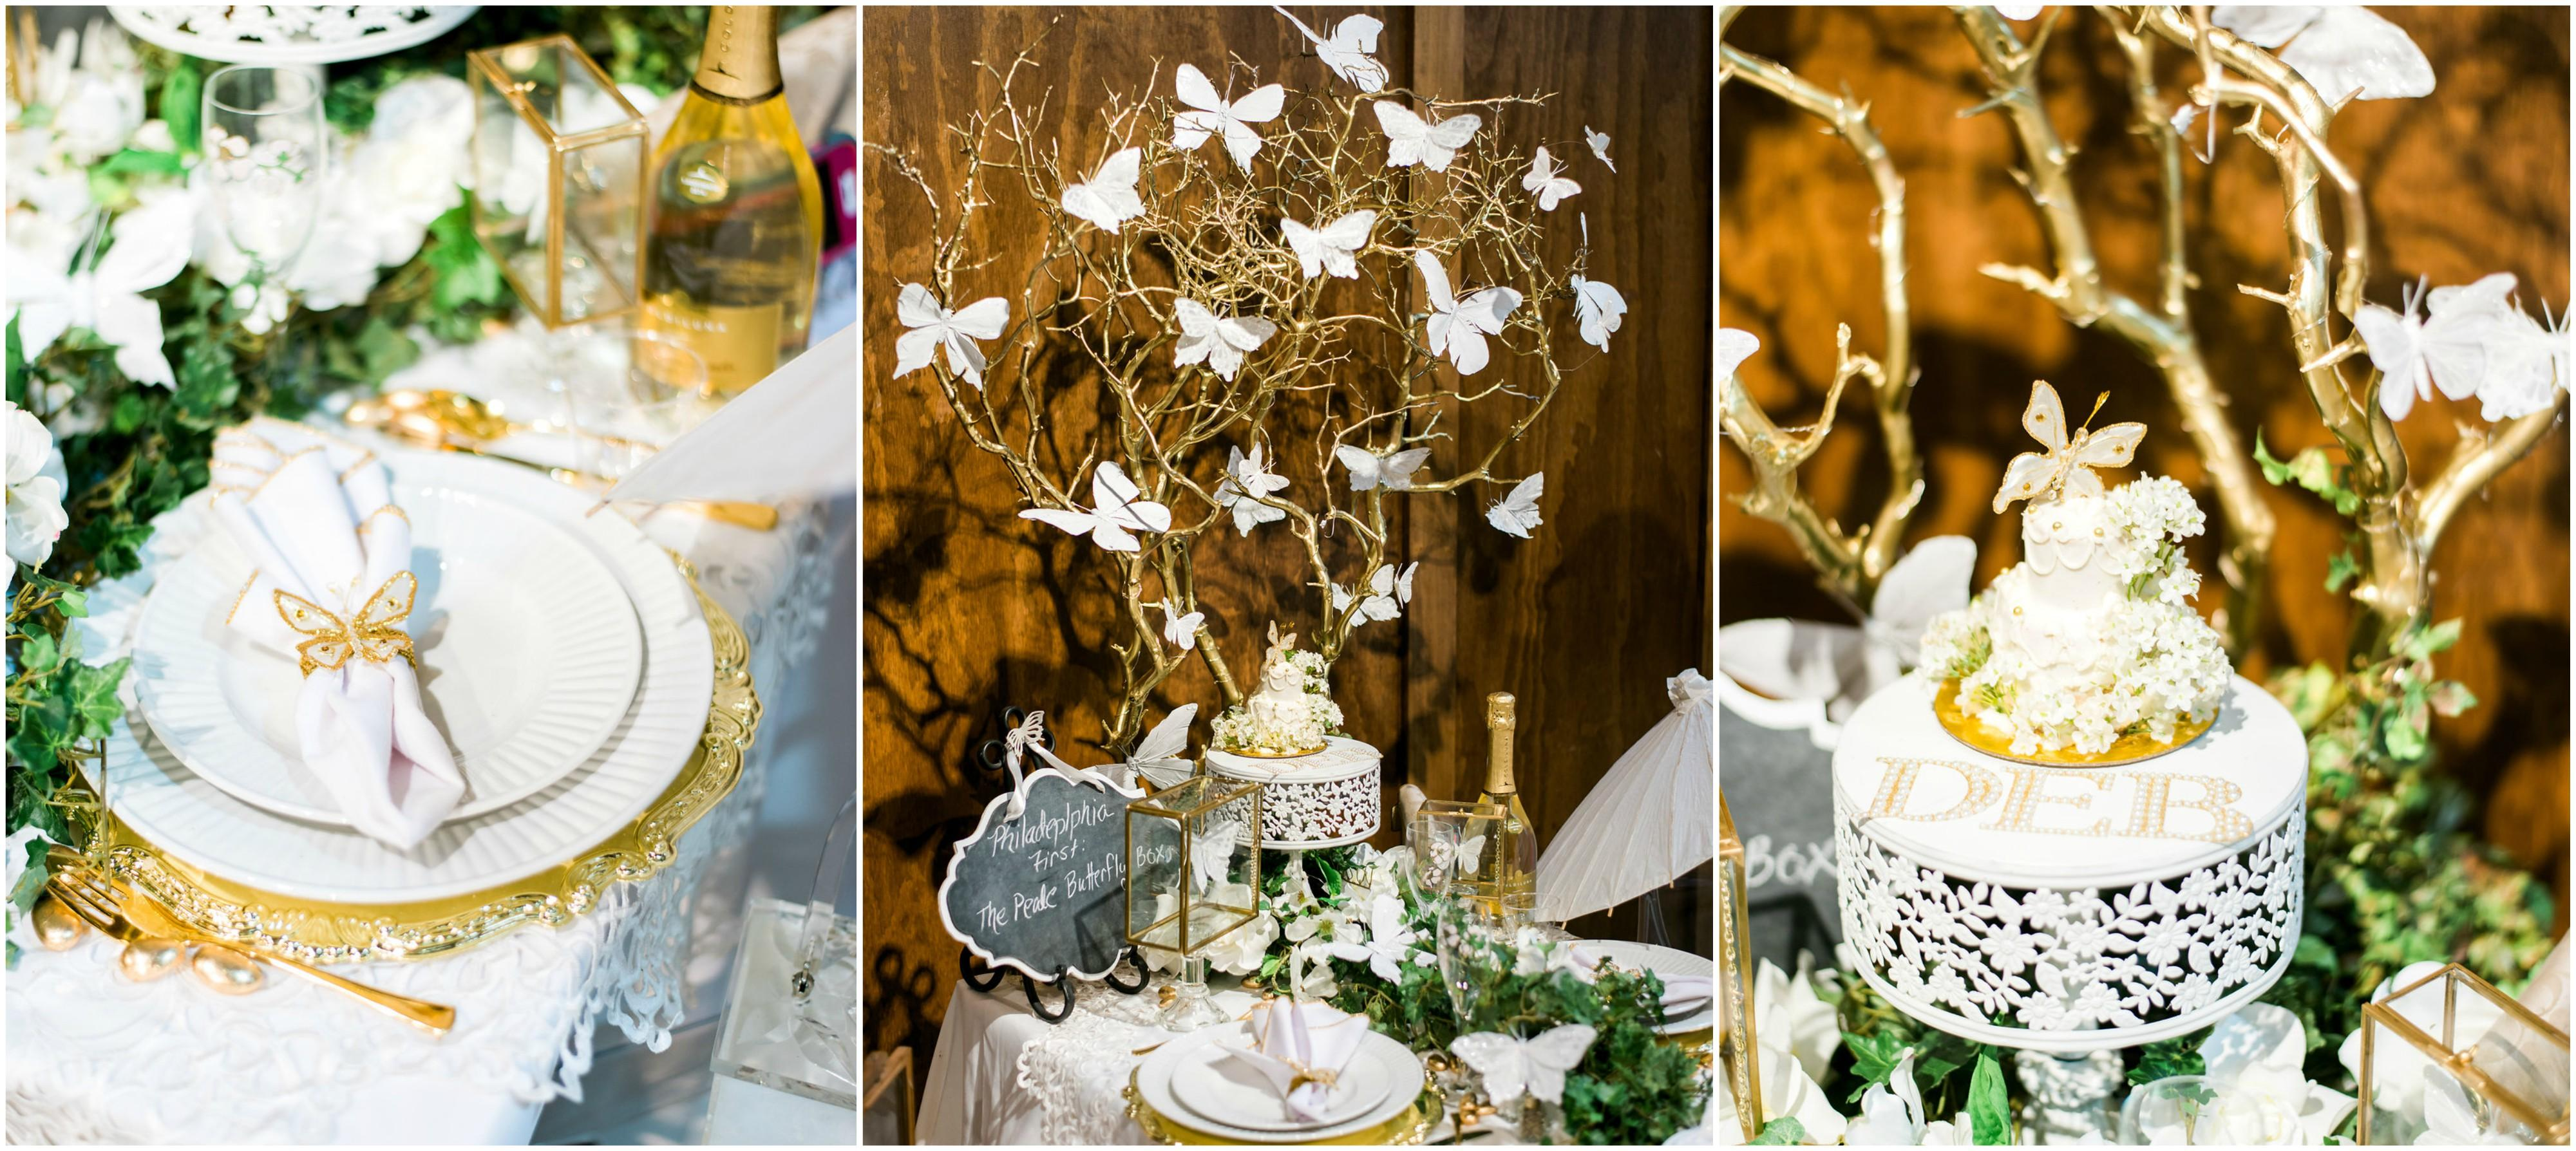 Diner en Blanc butterfly table